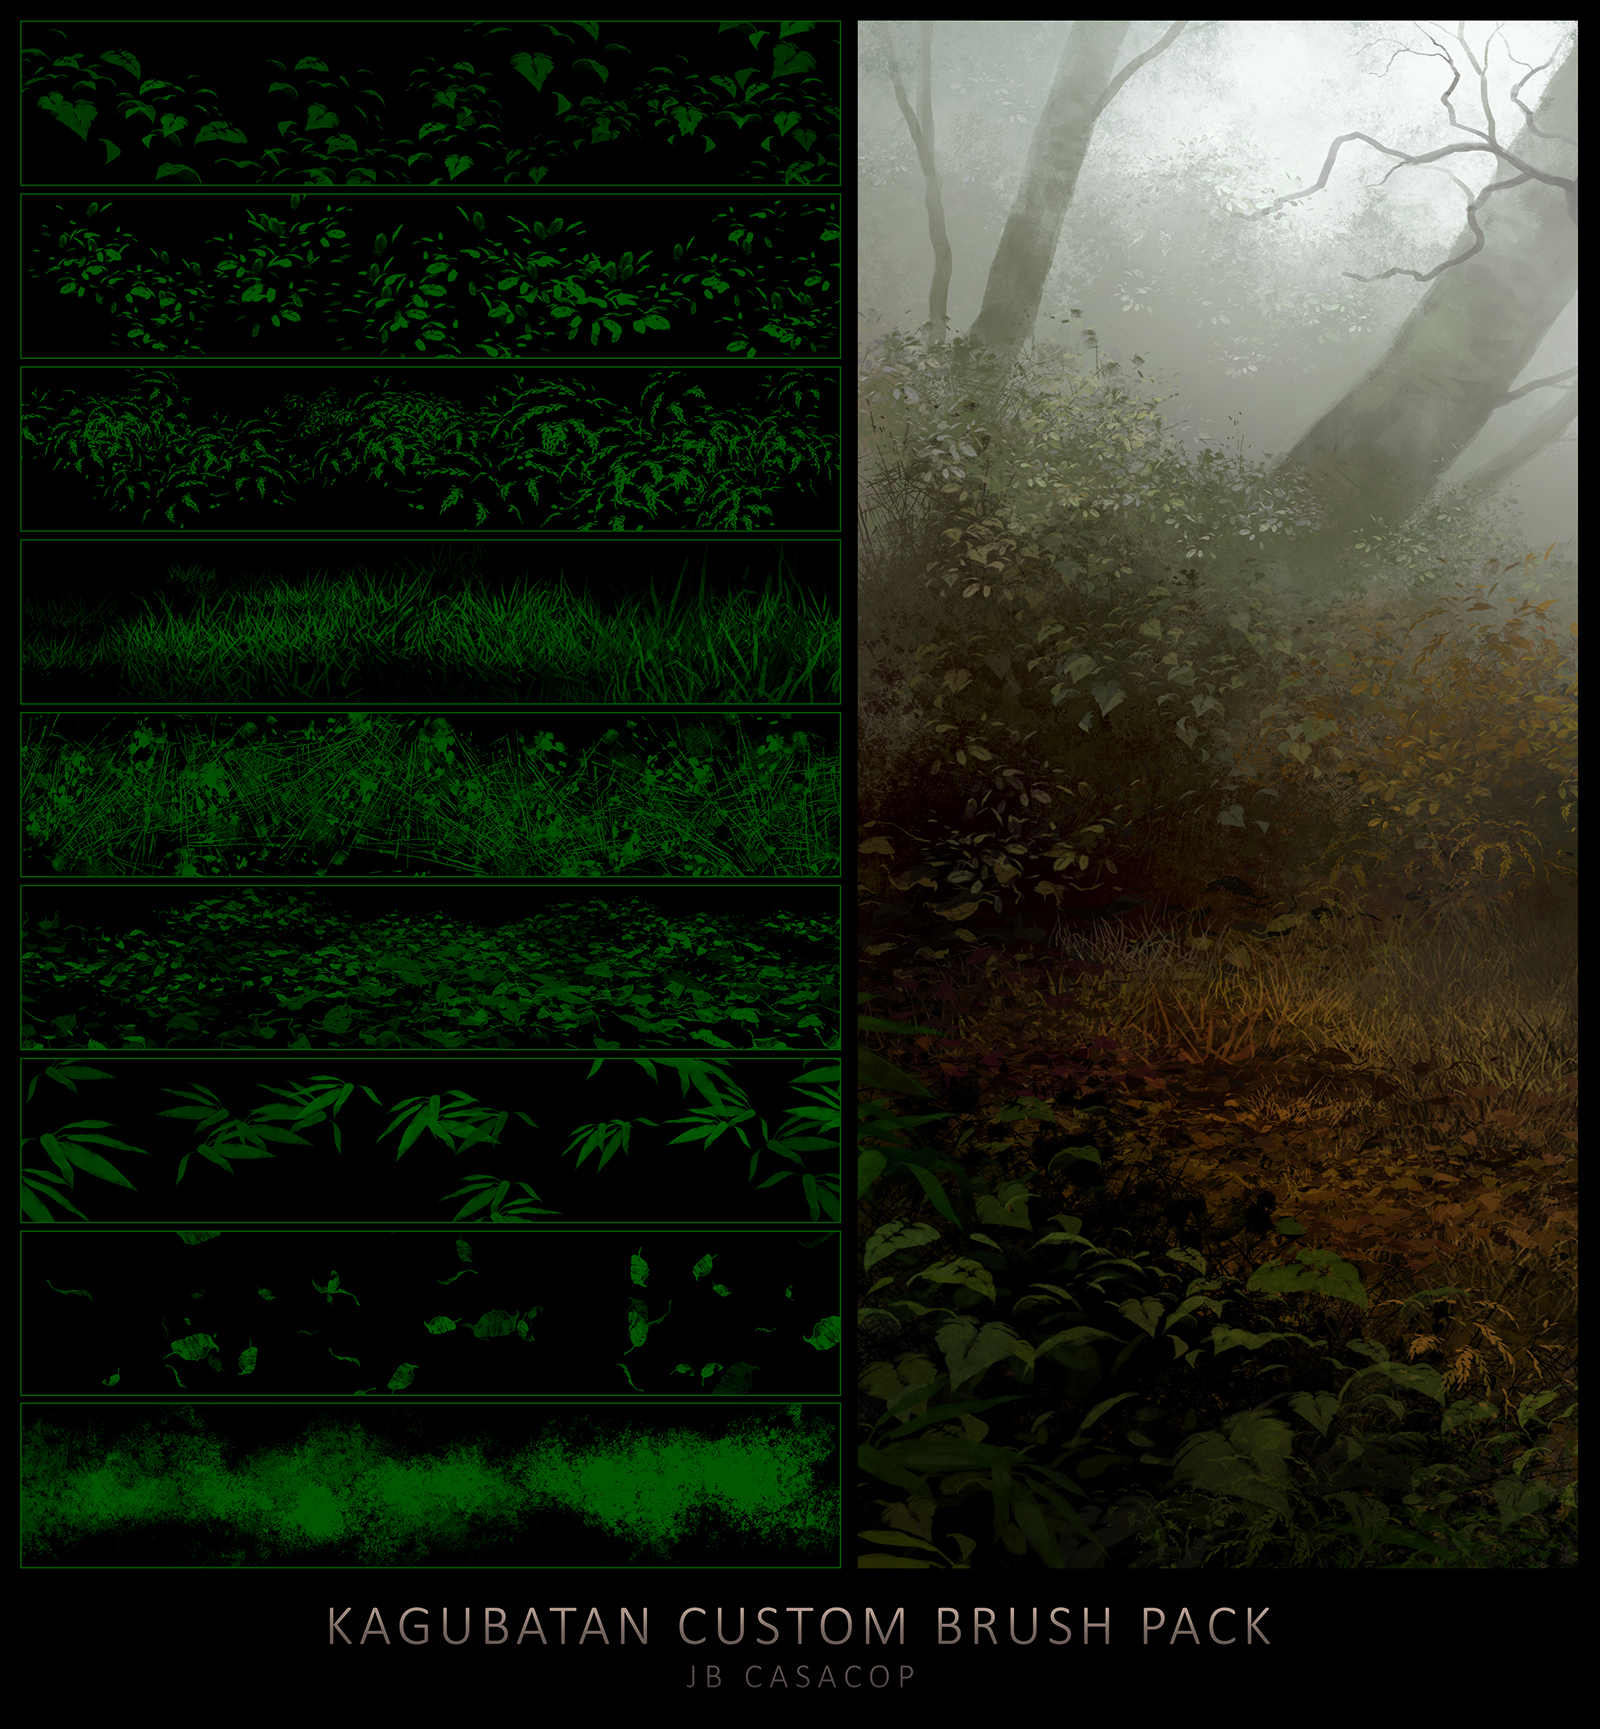 Kagubatan Custom Brush Pack by jbcasacop